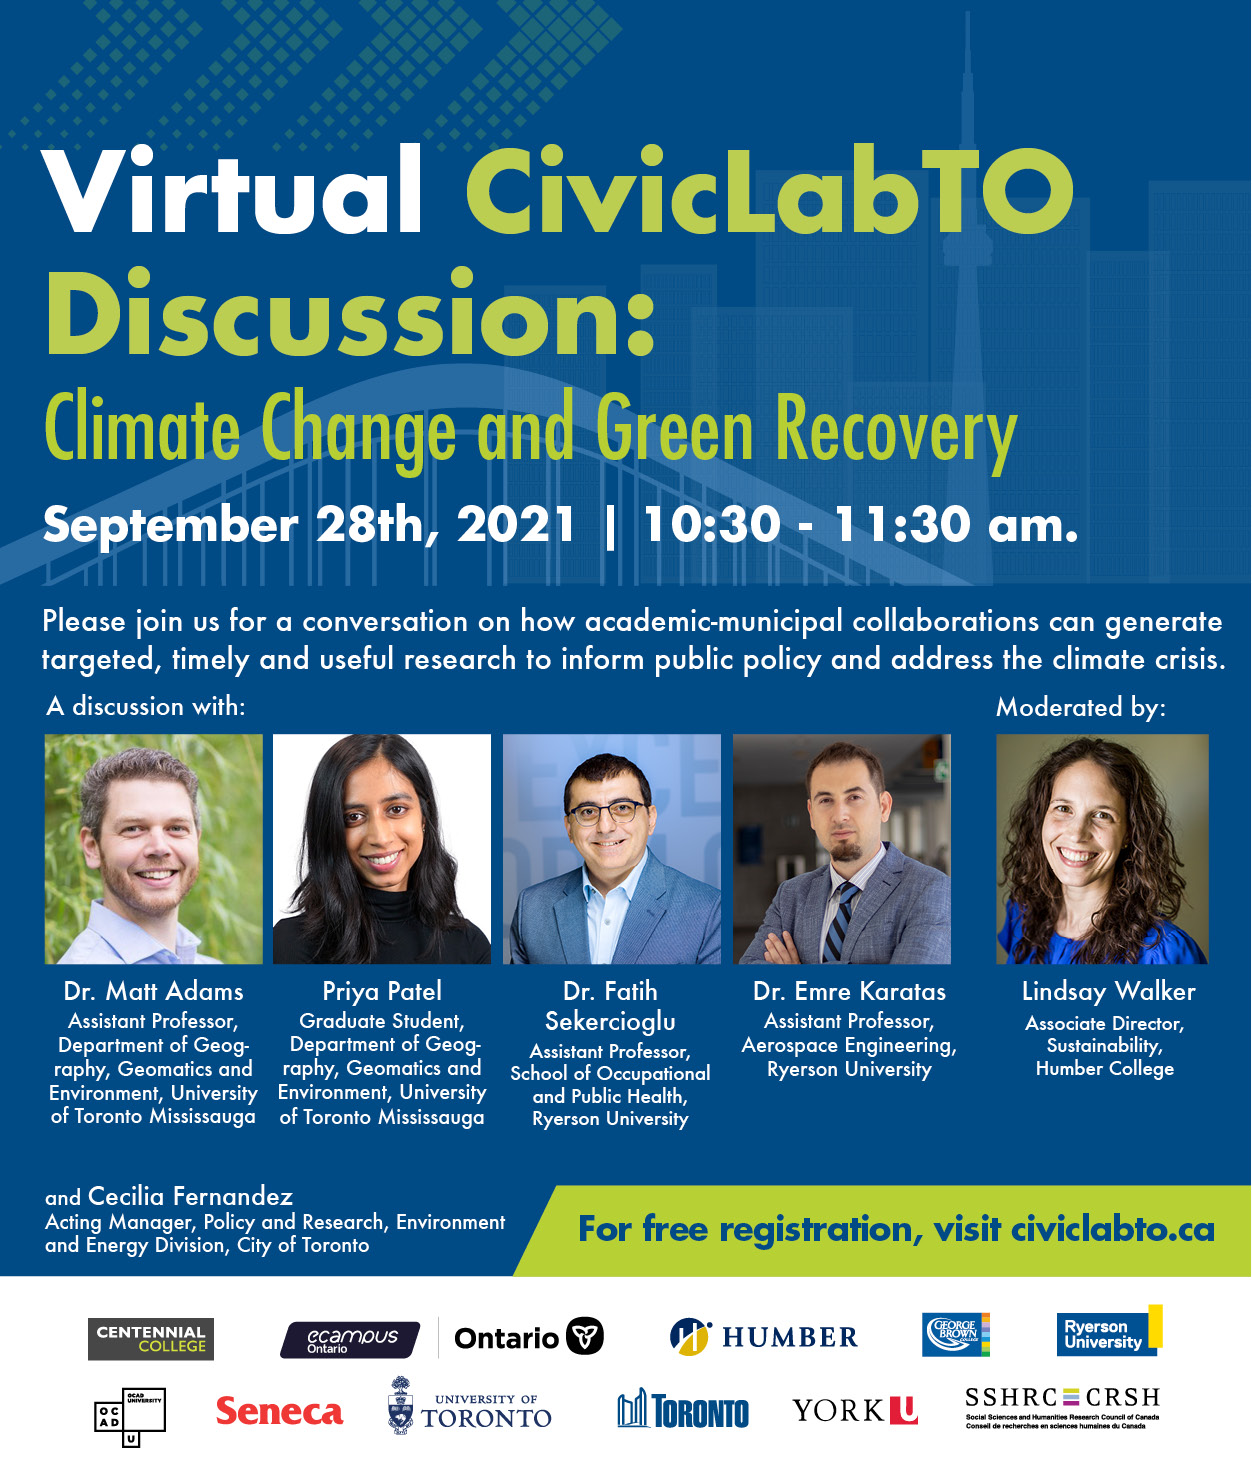 Virtual CivicLabTO Discussion: Climate Change and Green Recovery